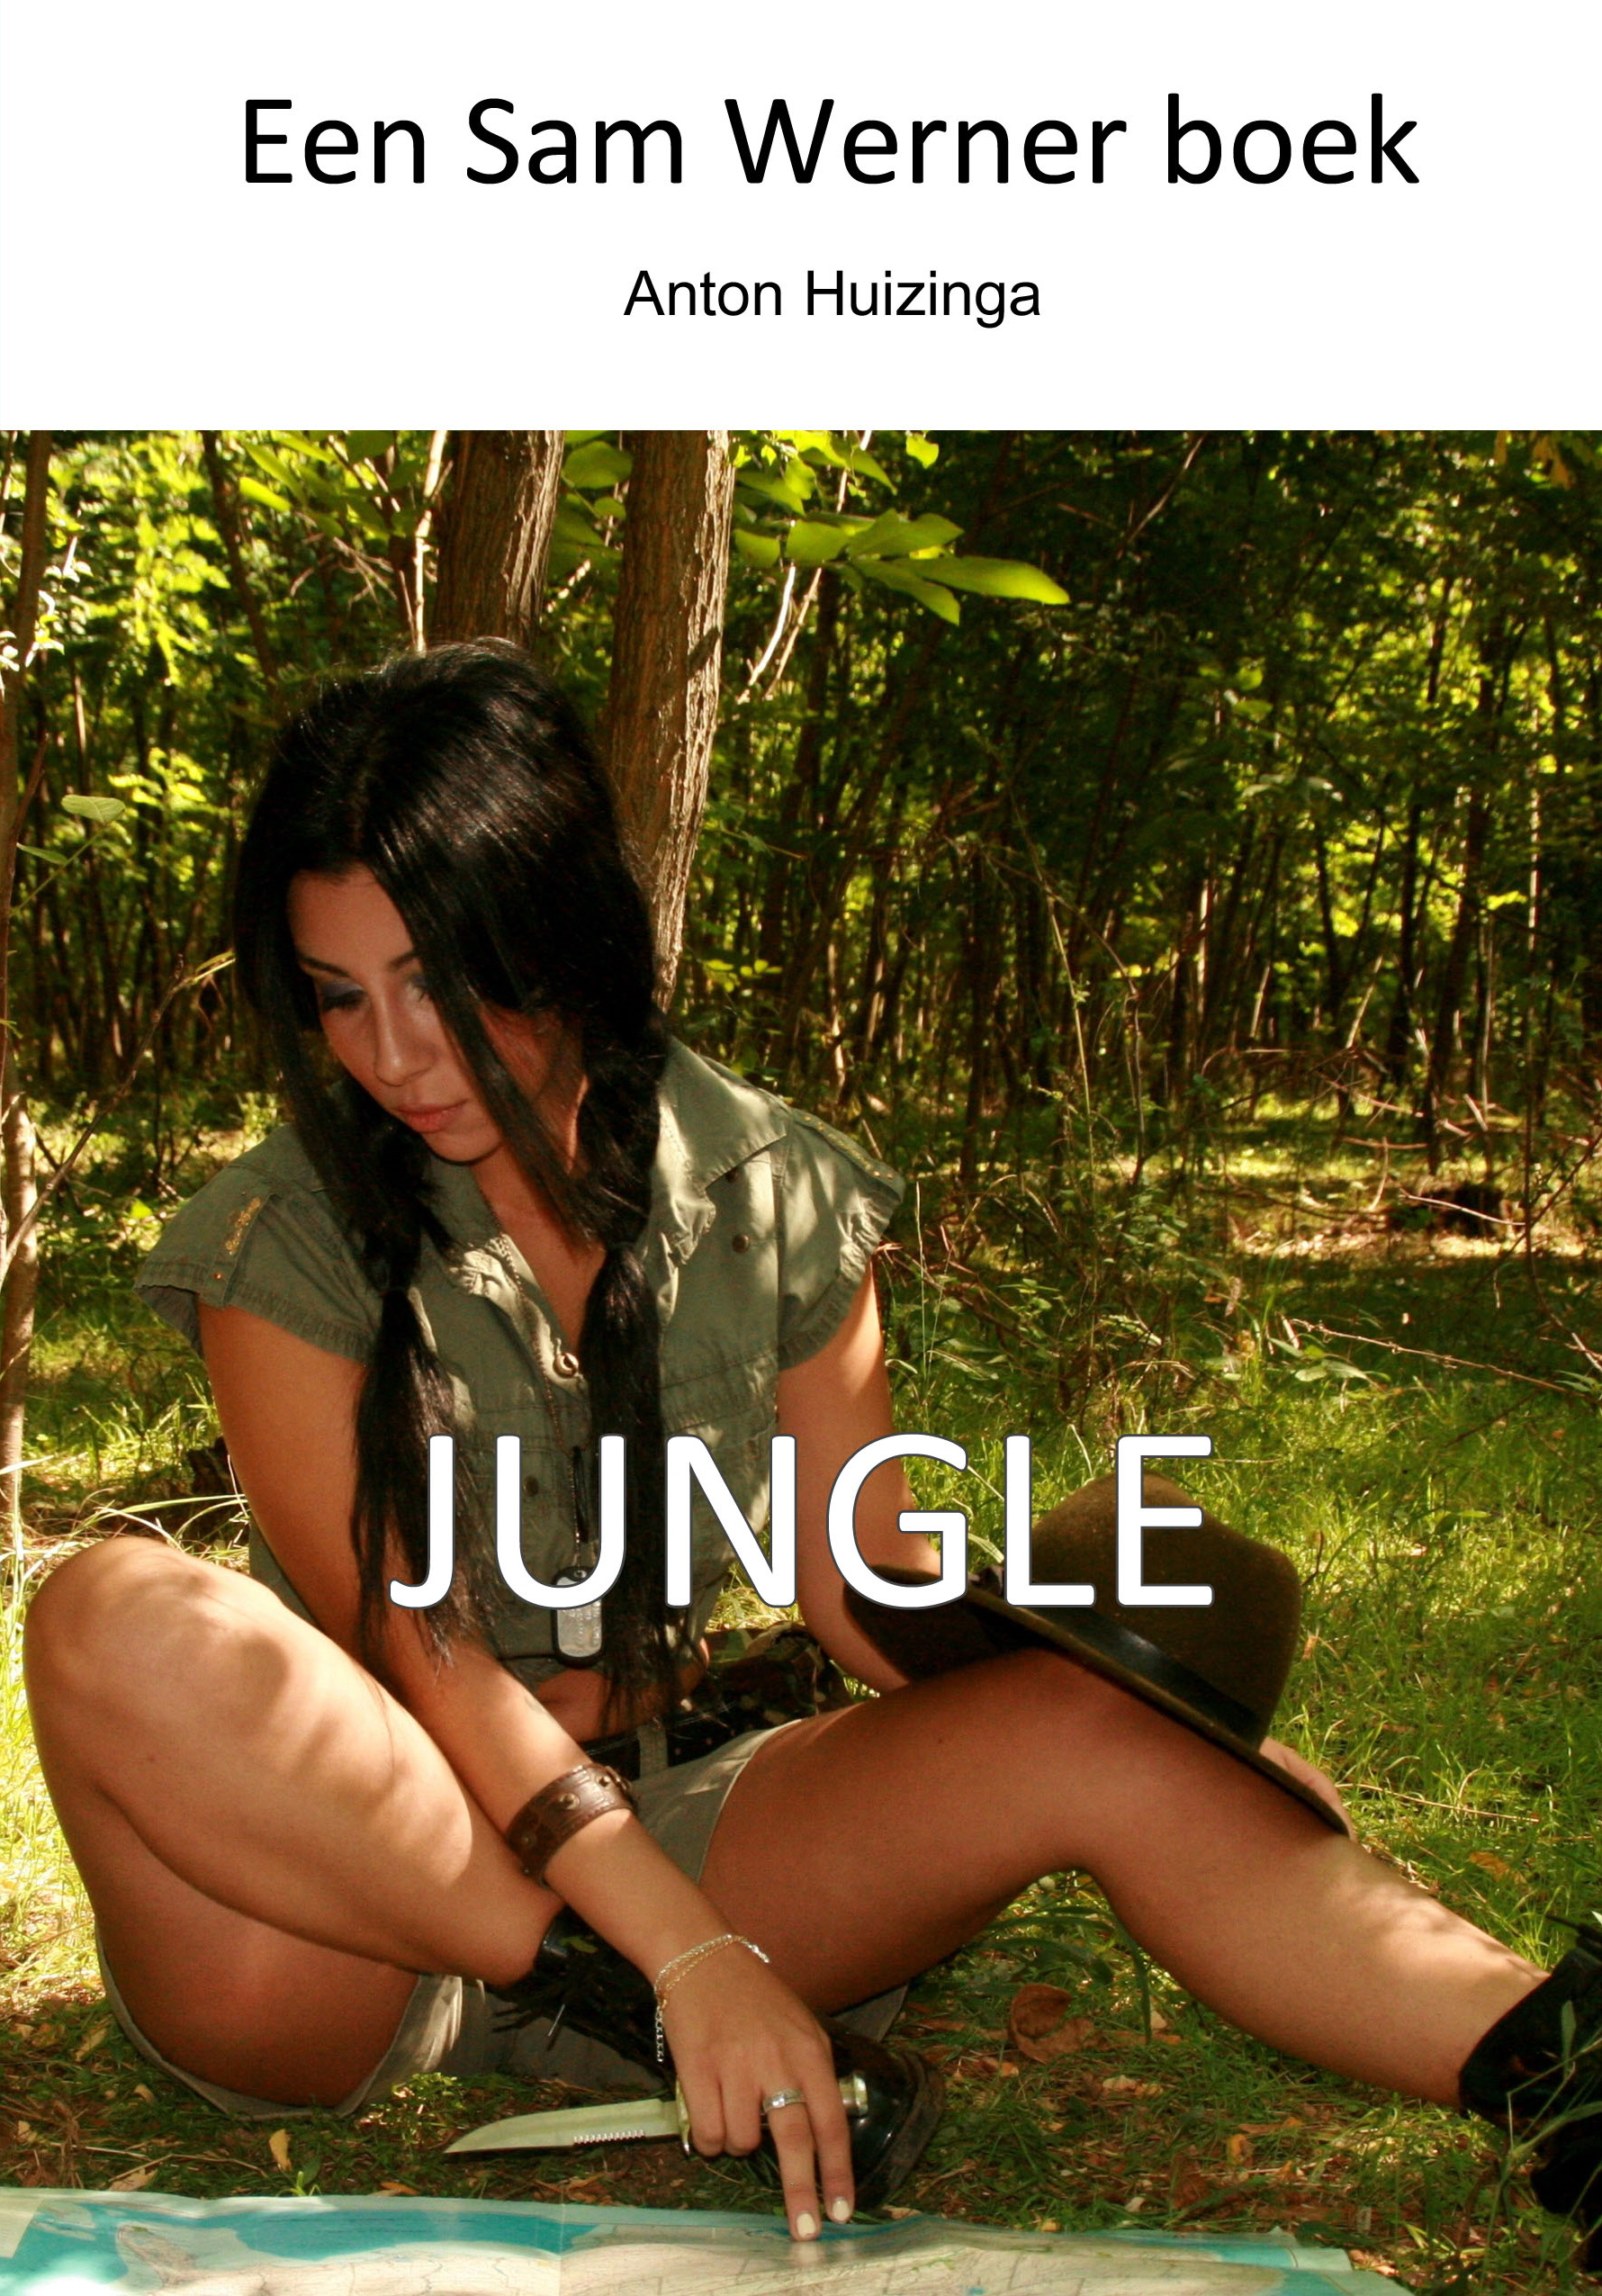 //huiz.net/wp-content/uploads/2019/09/omslag-jungle-ebook-1-1.jpg